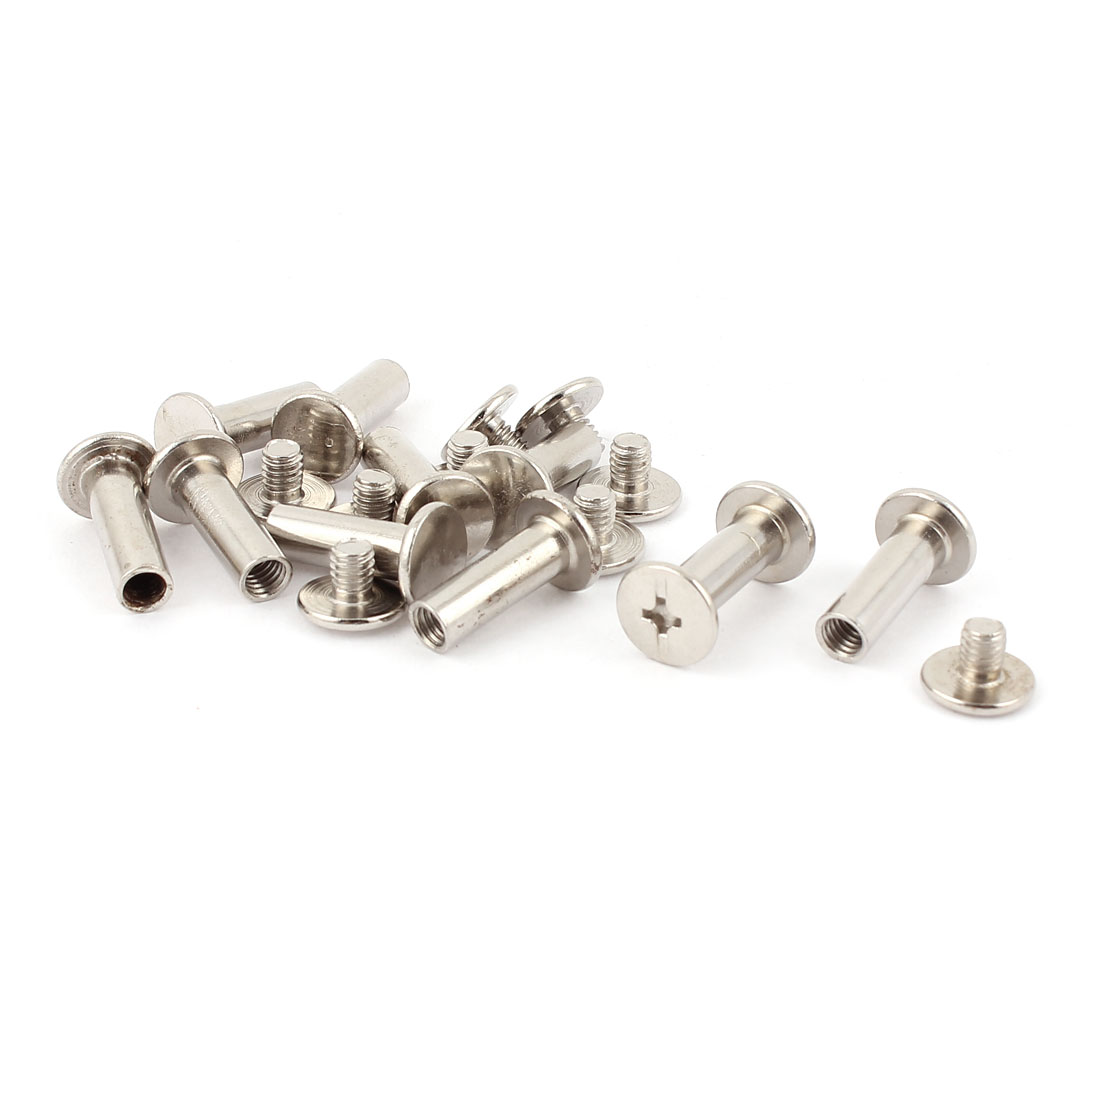 10pcs 5mmx15mm Nickel Plated Binding Chicago Screw Post for Album Scrapbook